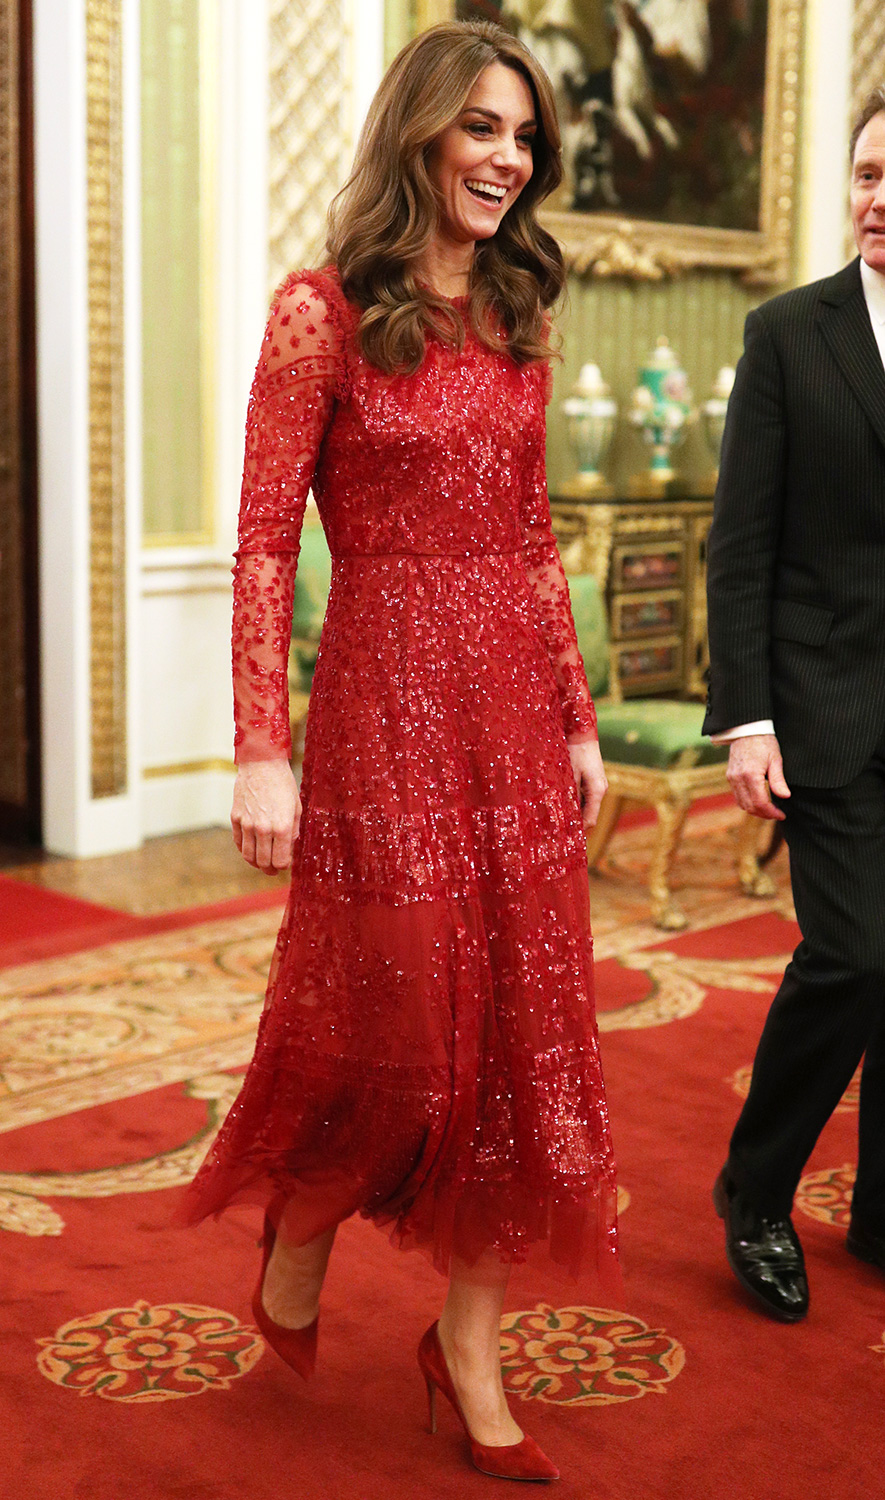 Catherine, Duchess of Cambridge walks through to the State Room with the Master of the Household during a reception to mark the UK-Africa Investment Summit at Buckingham Palace on January 20, 2020 in London, England